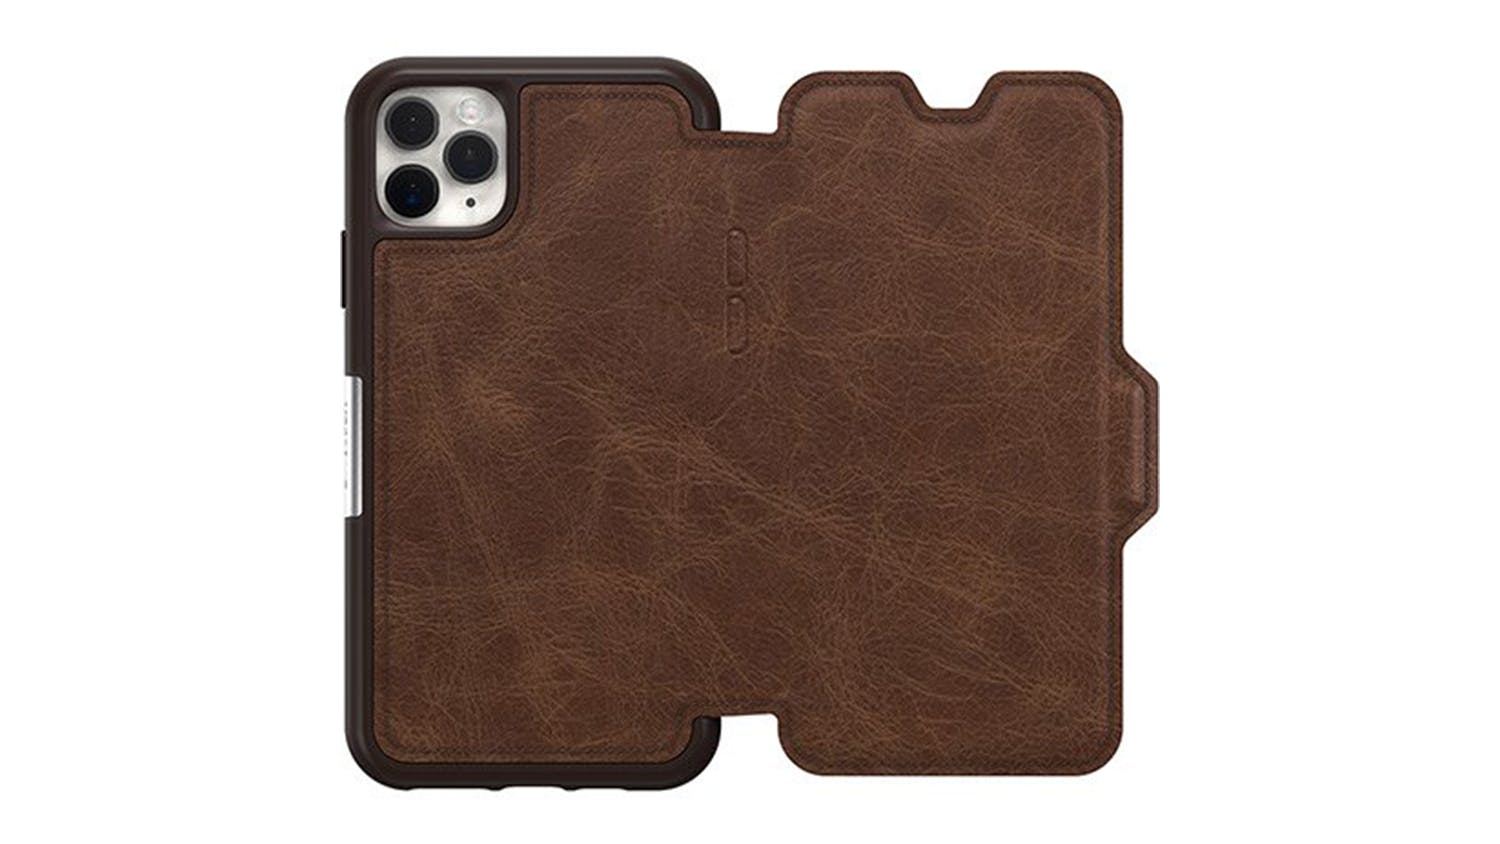 Otterbox Strada iPhone 11 Pro Max - Brown